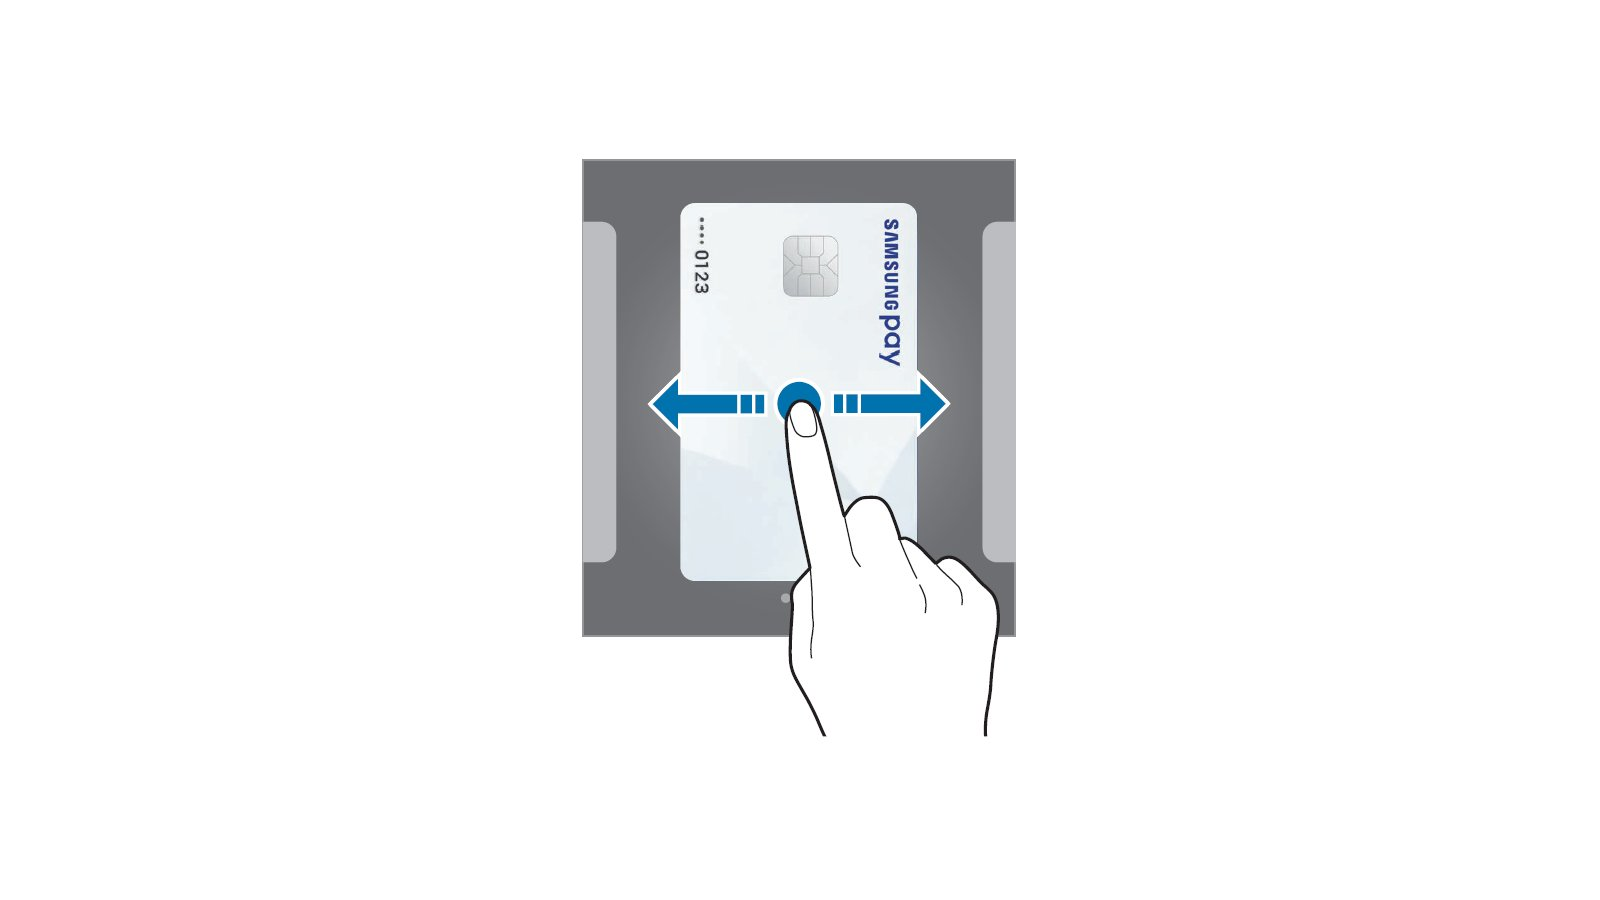 Samsung Pay - Selecting Cards